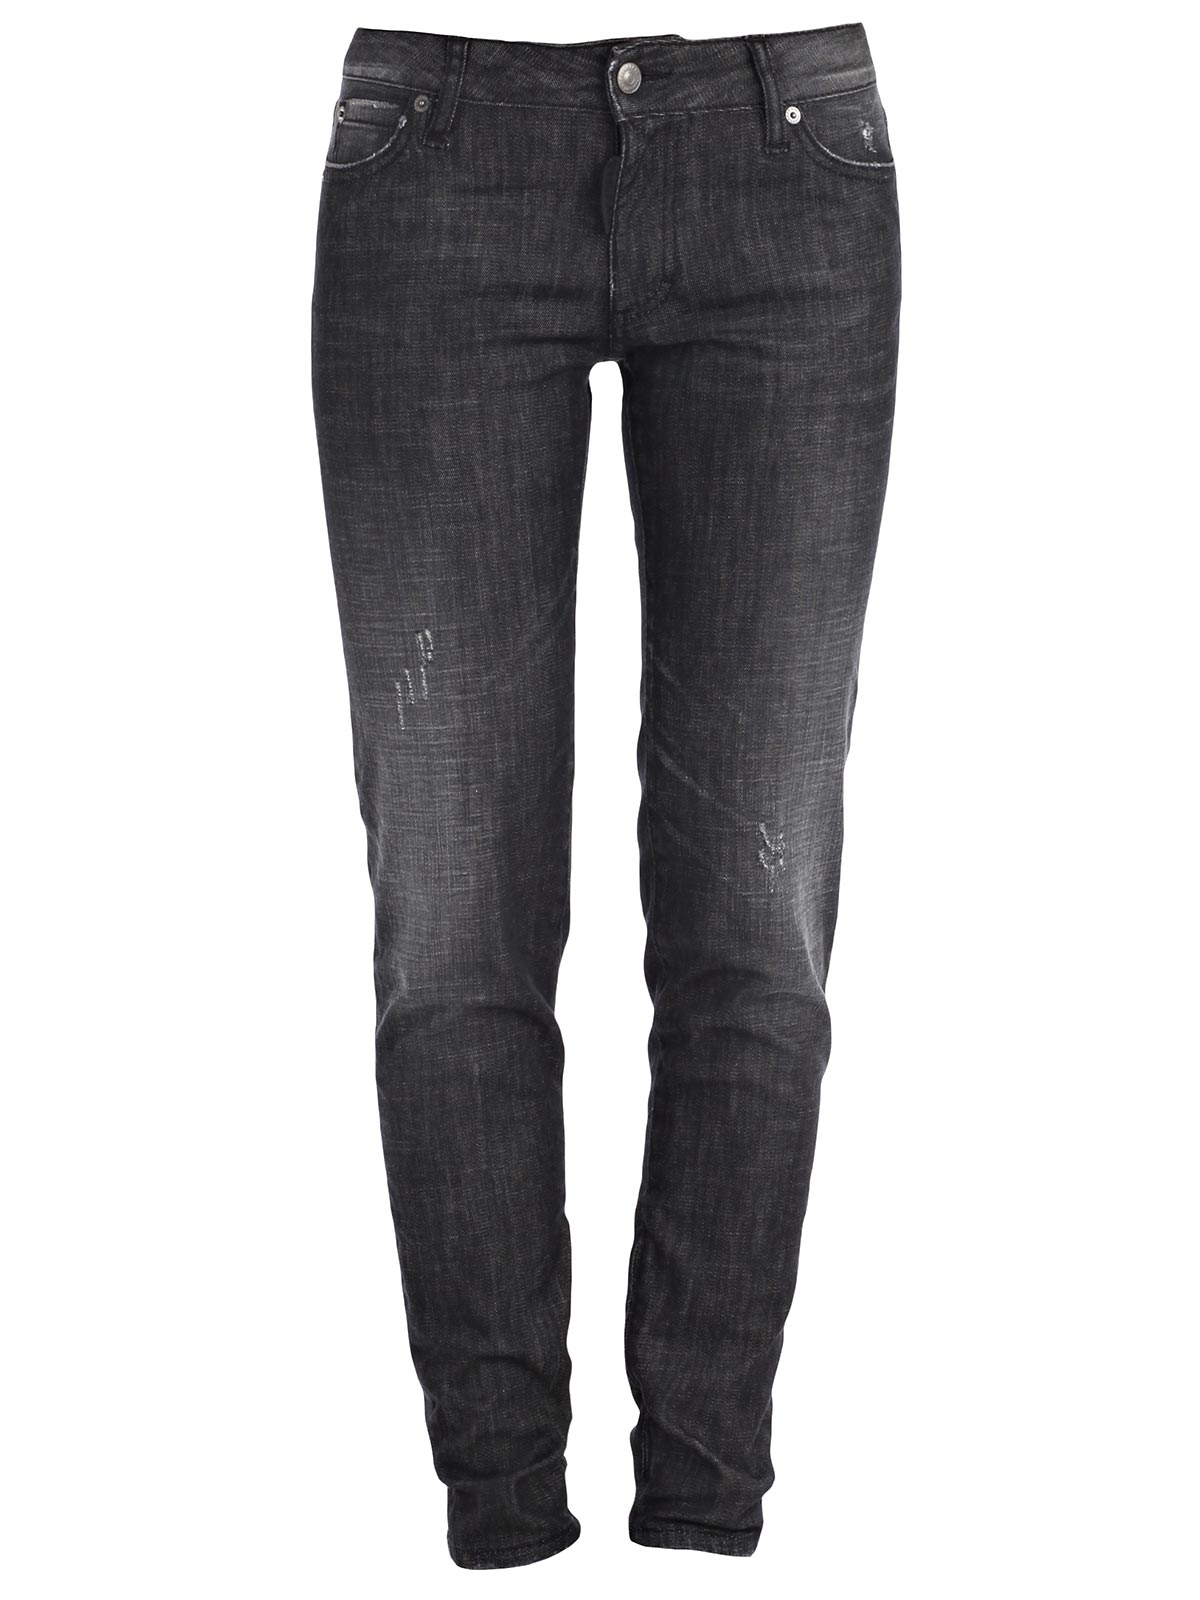 Picture of DSQUARED2 JEANS JEANS MEDIUM WAIST SKINNY